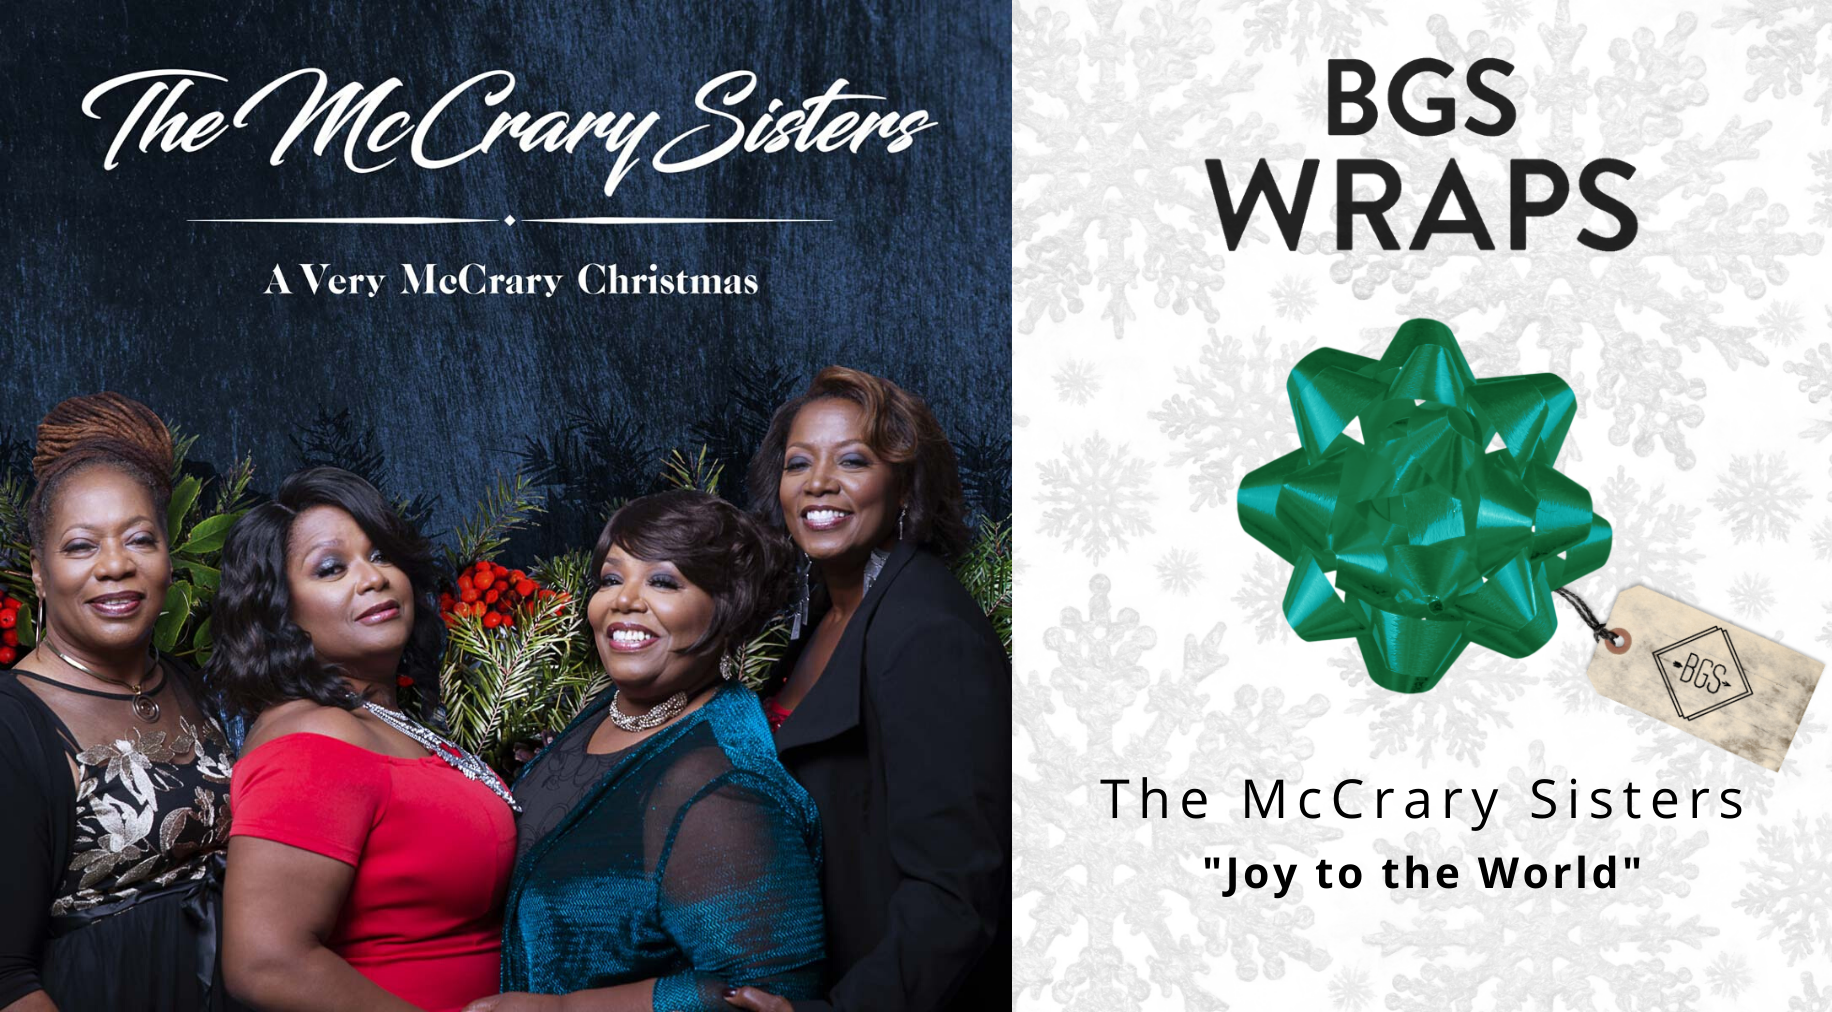 BGS WRAPS: The McCrary Sisters,